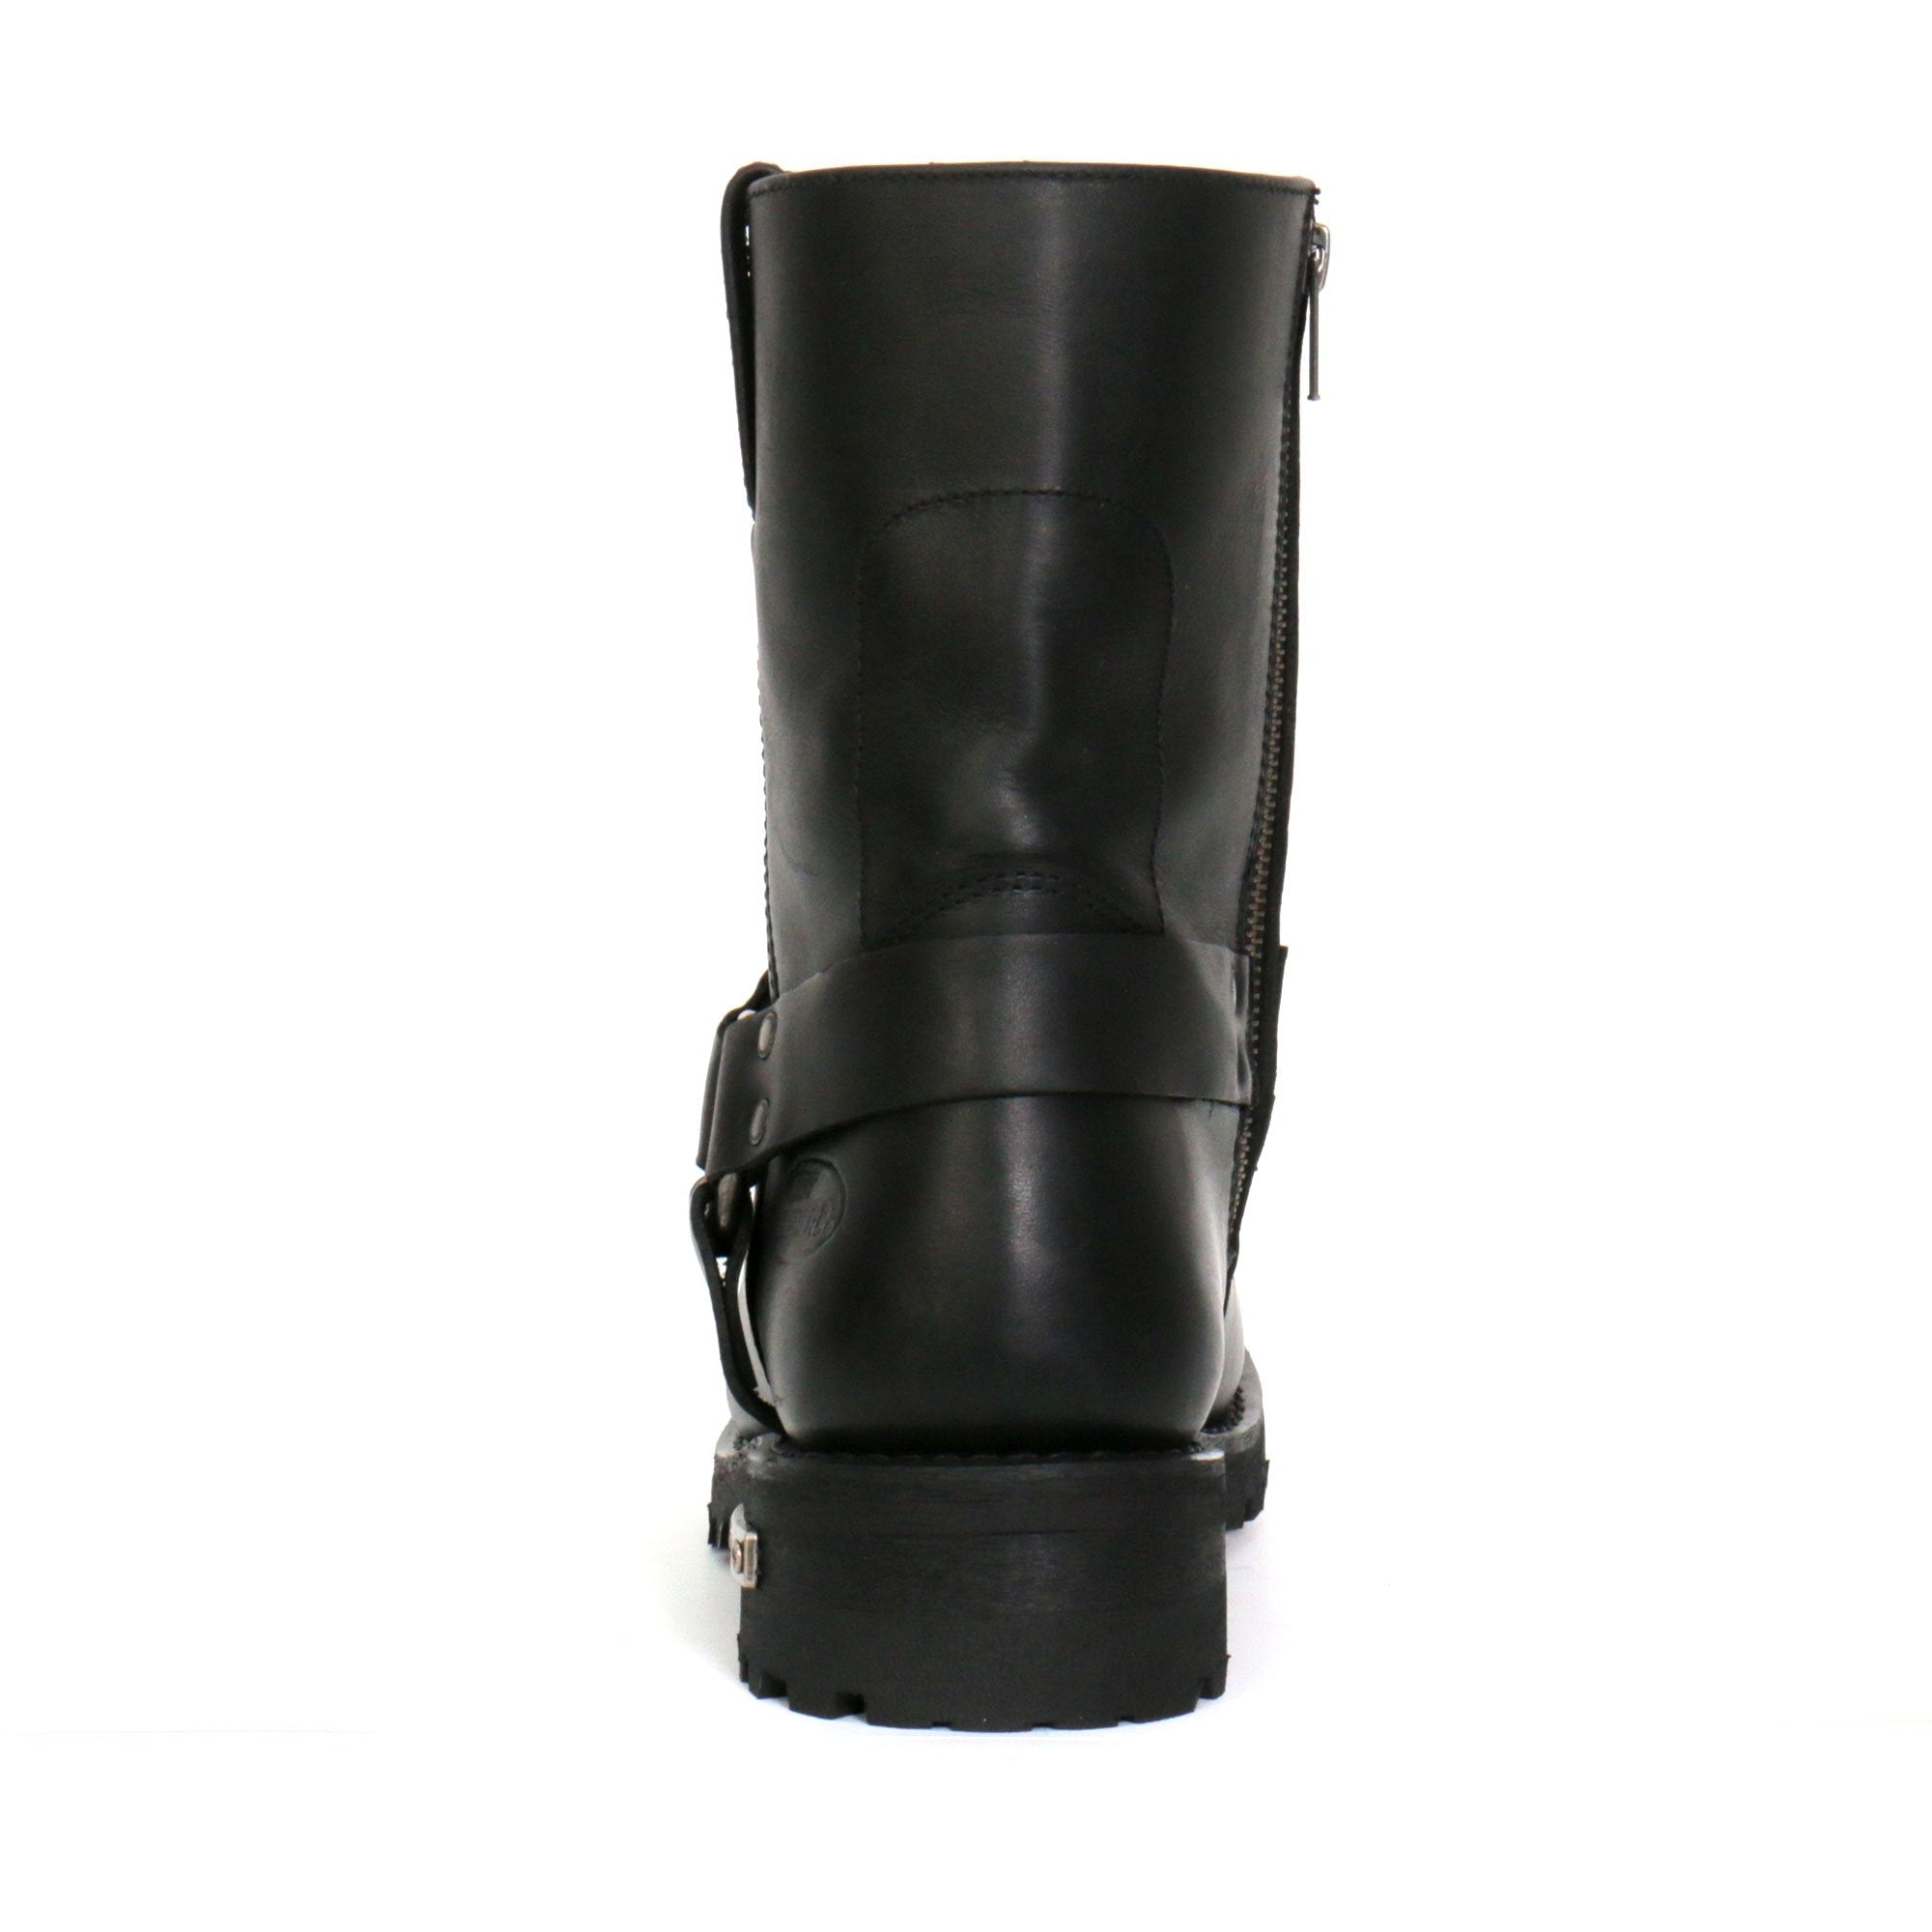 "Hot Leathers Men's 8"" Short Harness Boots with Side Zipper"